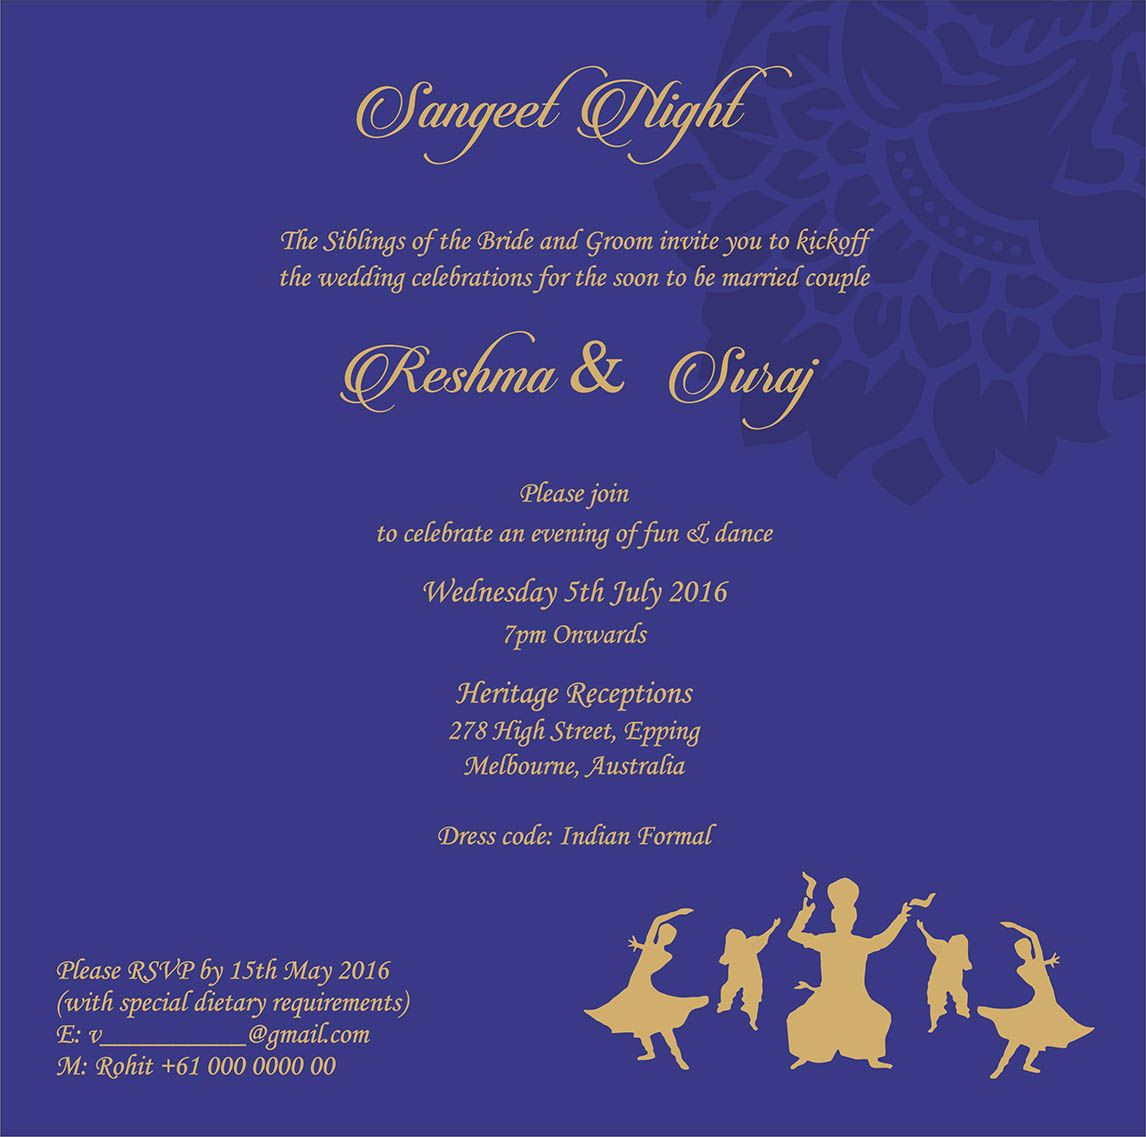 Wedding Invitation Wording For Sangeet Ceremony Wedding Card Wordings Indian Wedding Invitation Wording Hindu Wedding Invitations